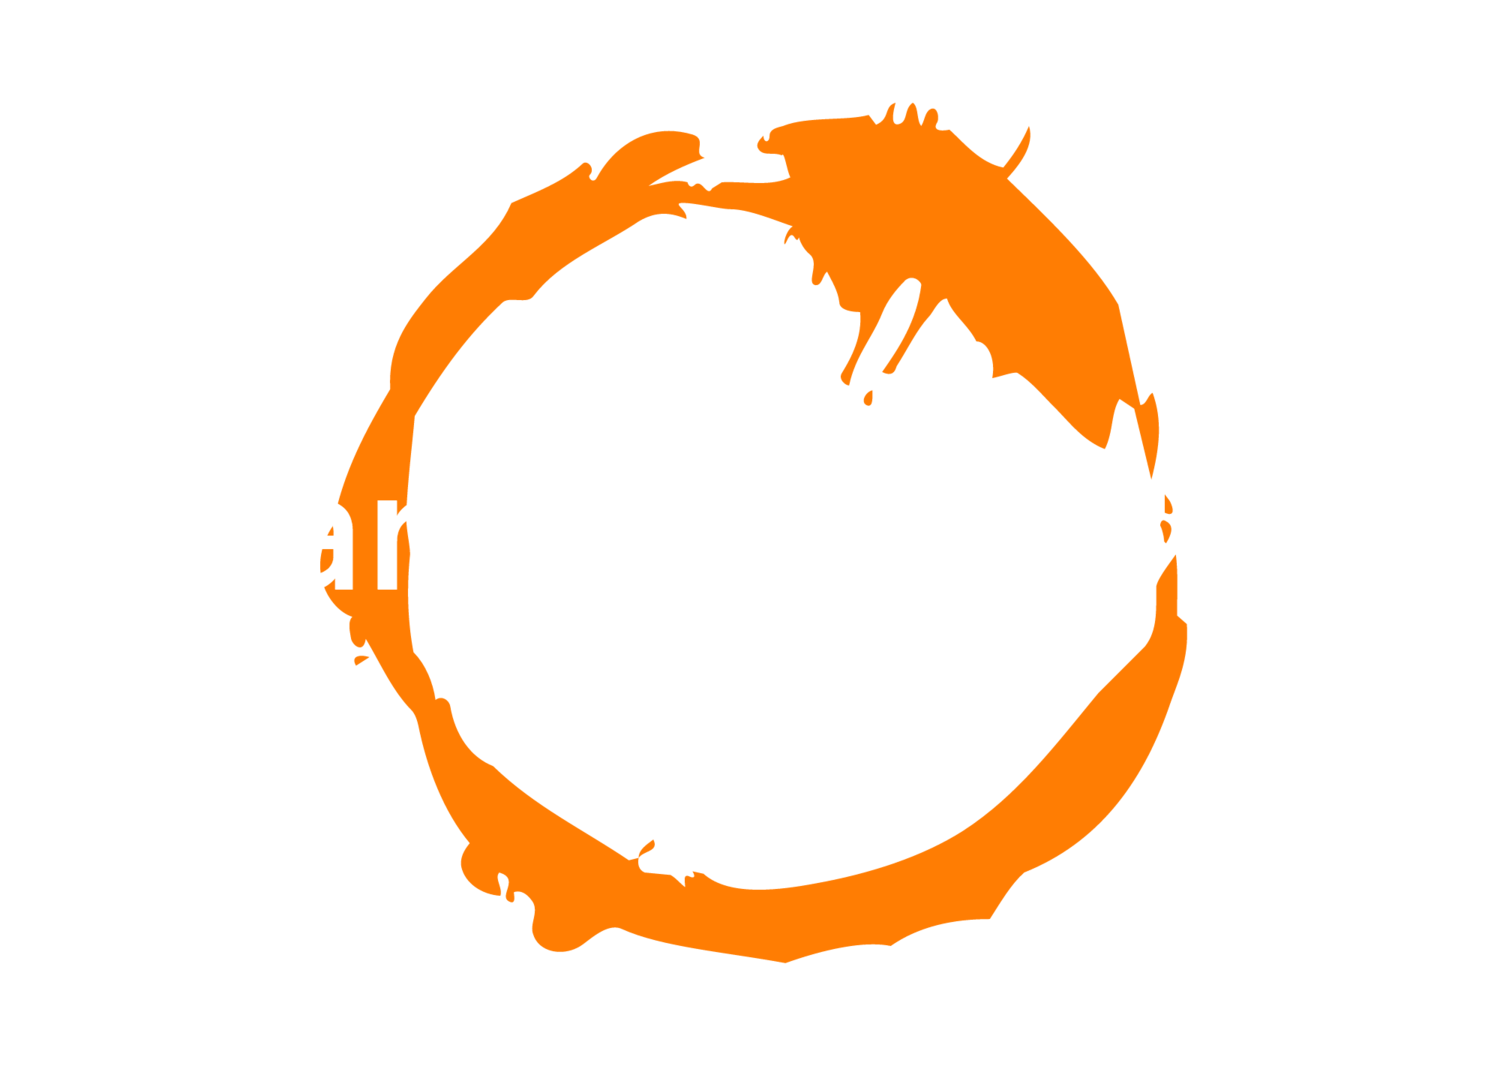 Mandala Group